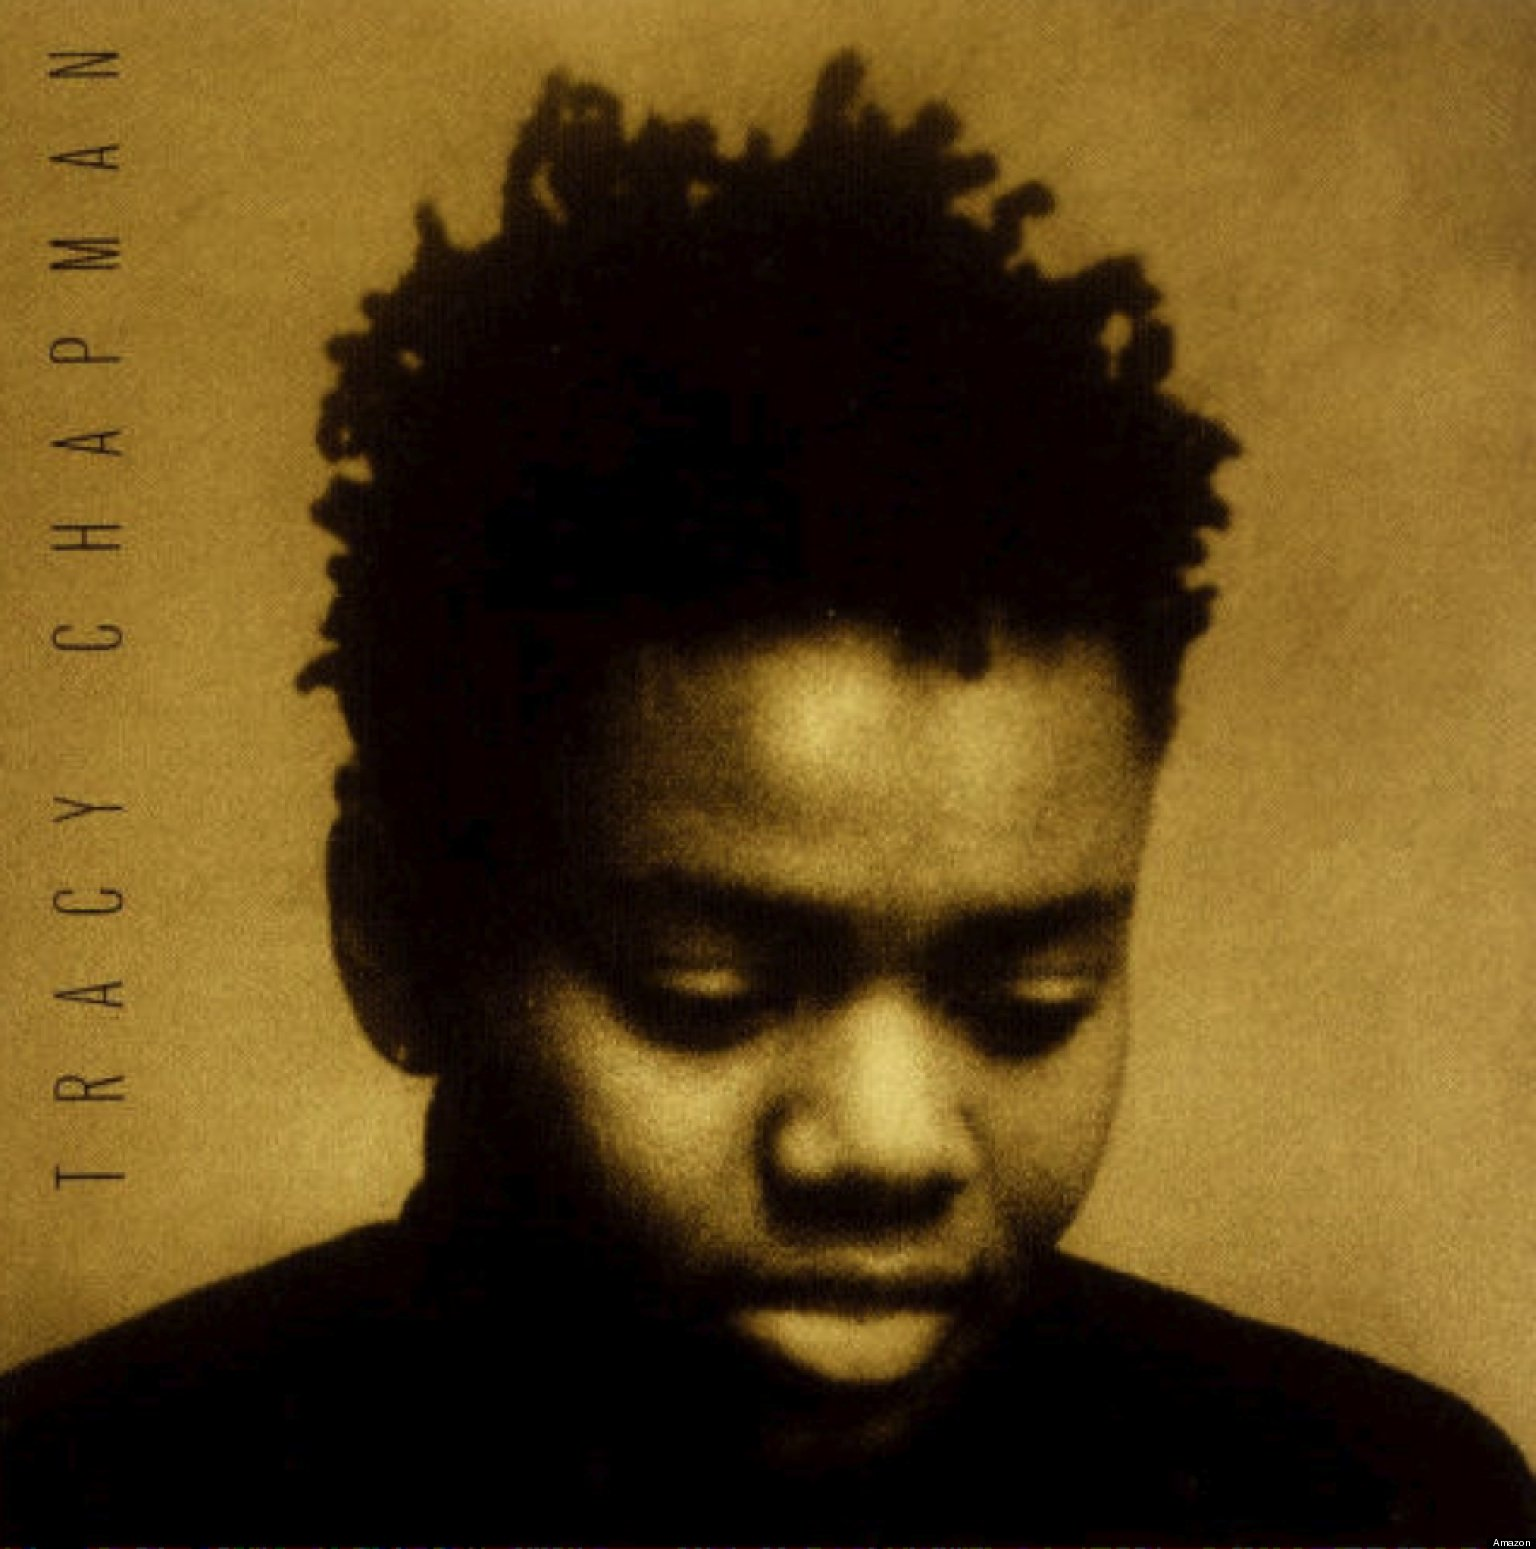 Tracy Chapman Album Anniversary Folk Singers Self Titled Album Turns 25 Years Old VIDEO